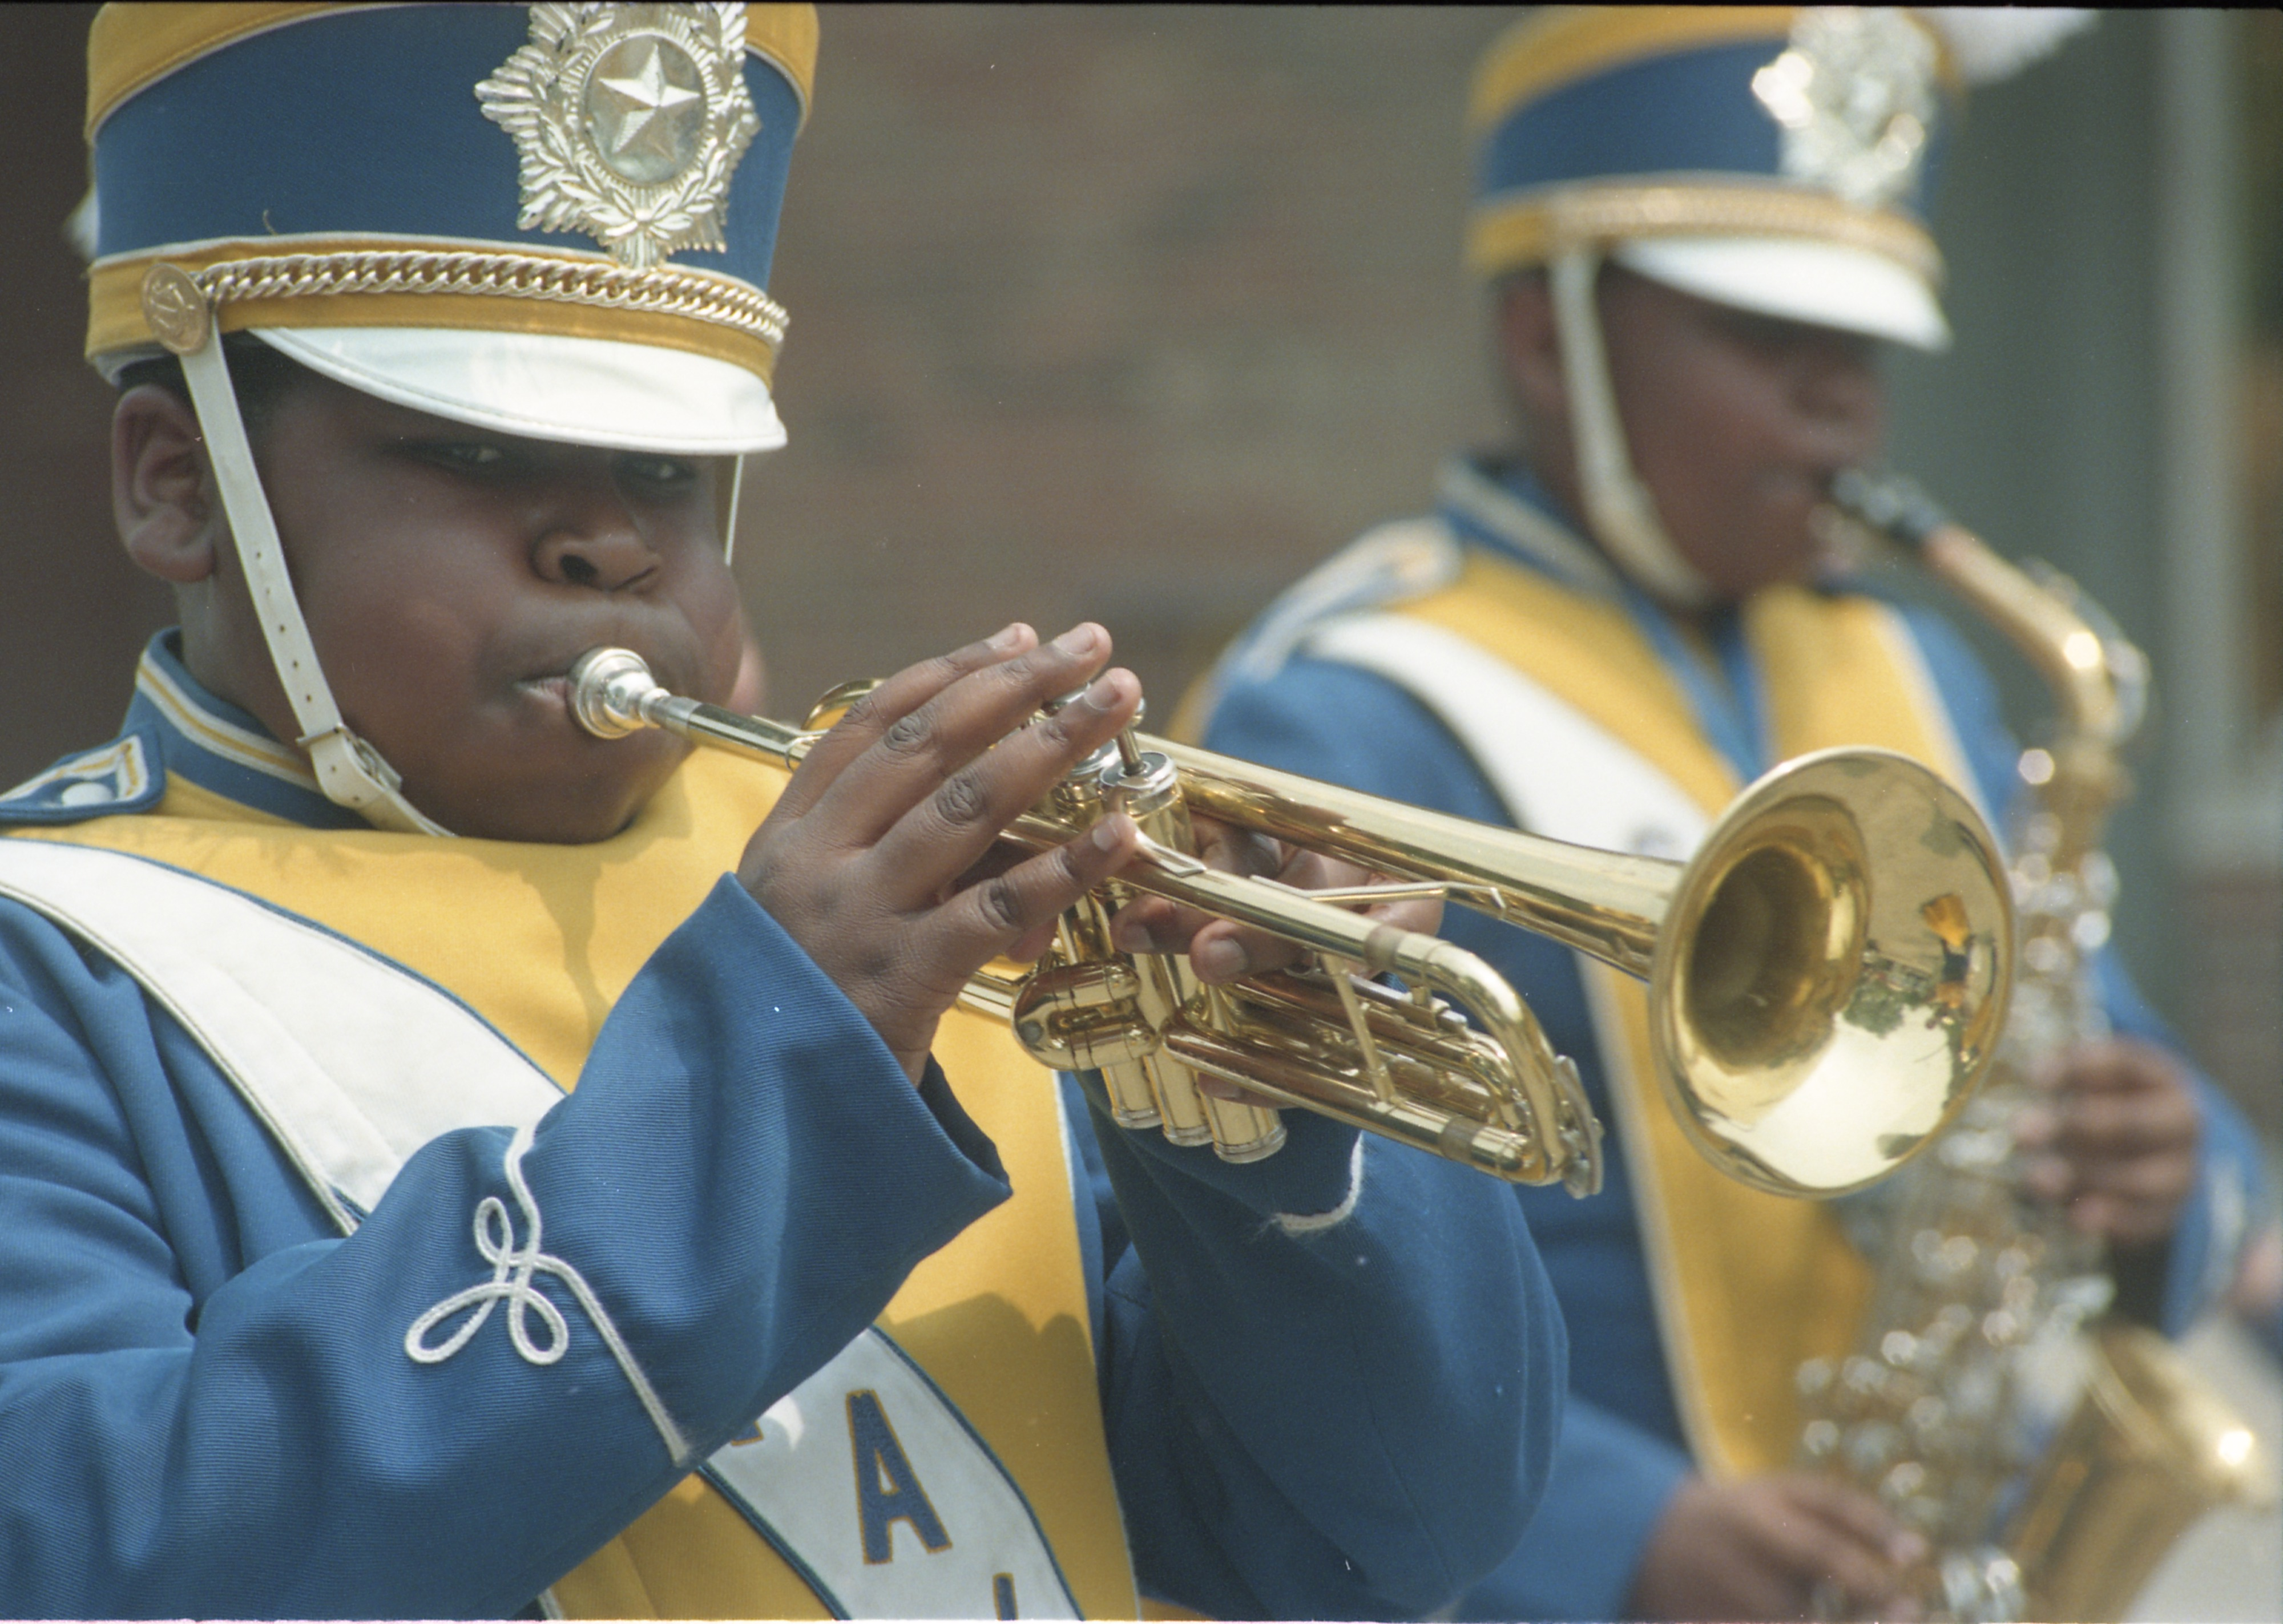 Image from Trumpeter In Marching Band At The Royal Hanneford Circus Parade, June 23, 1995